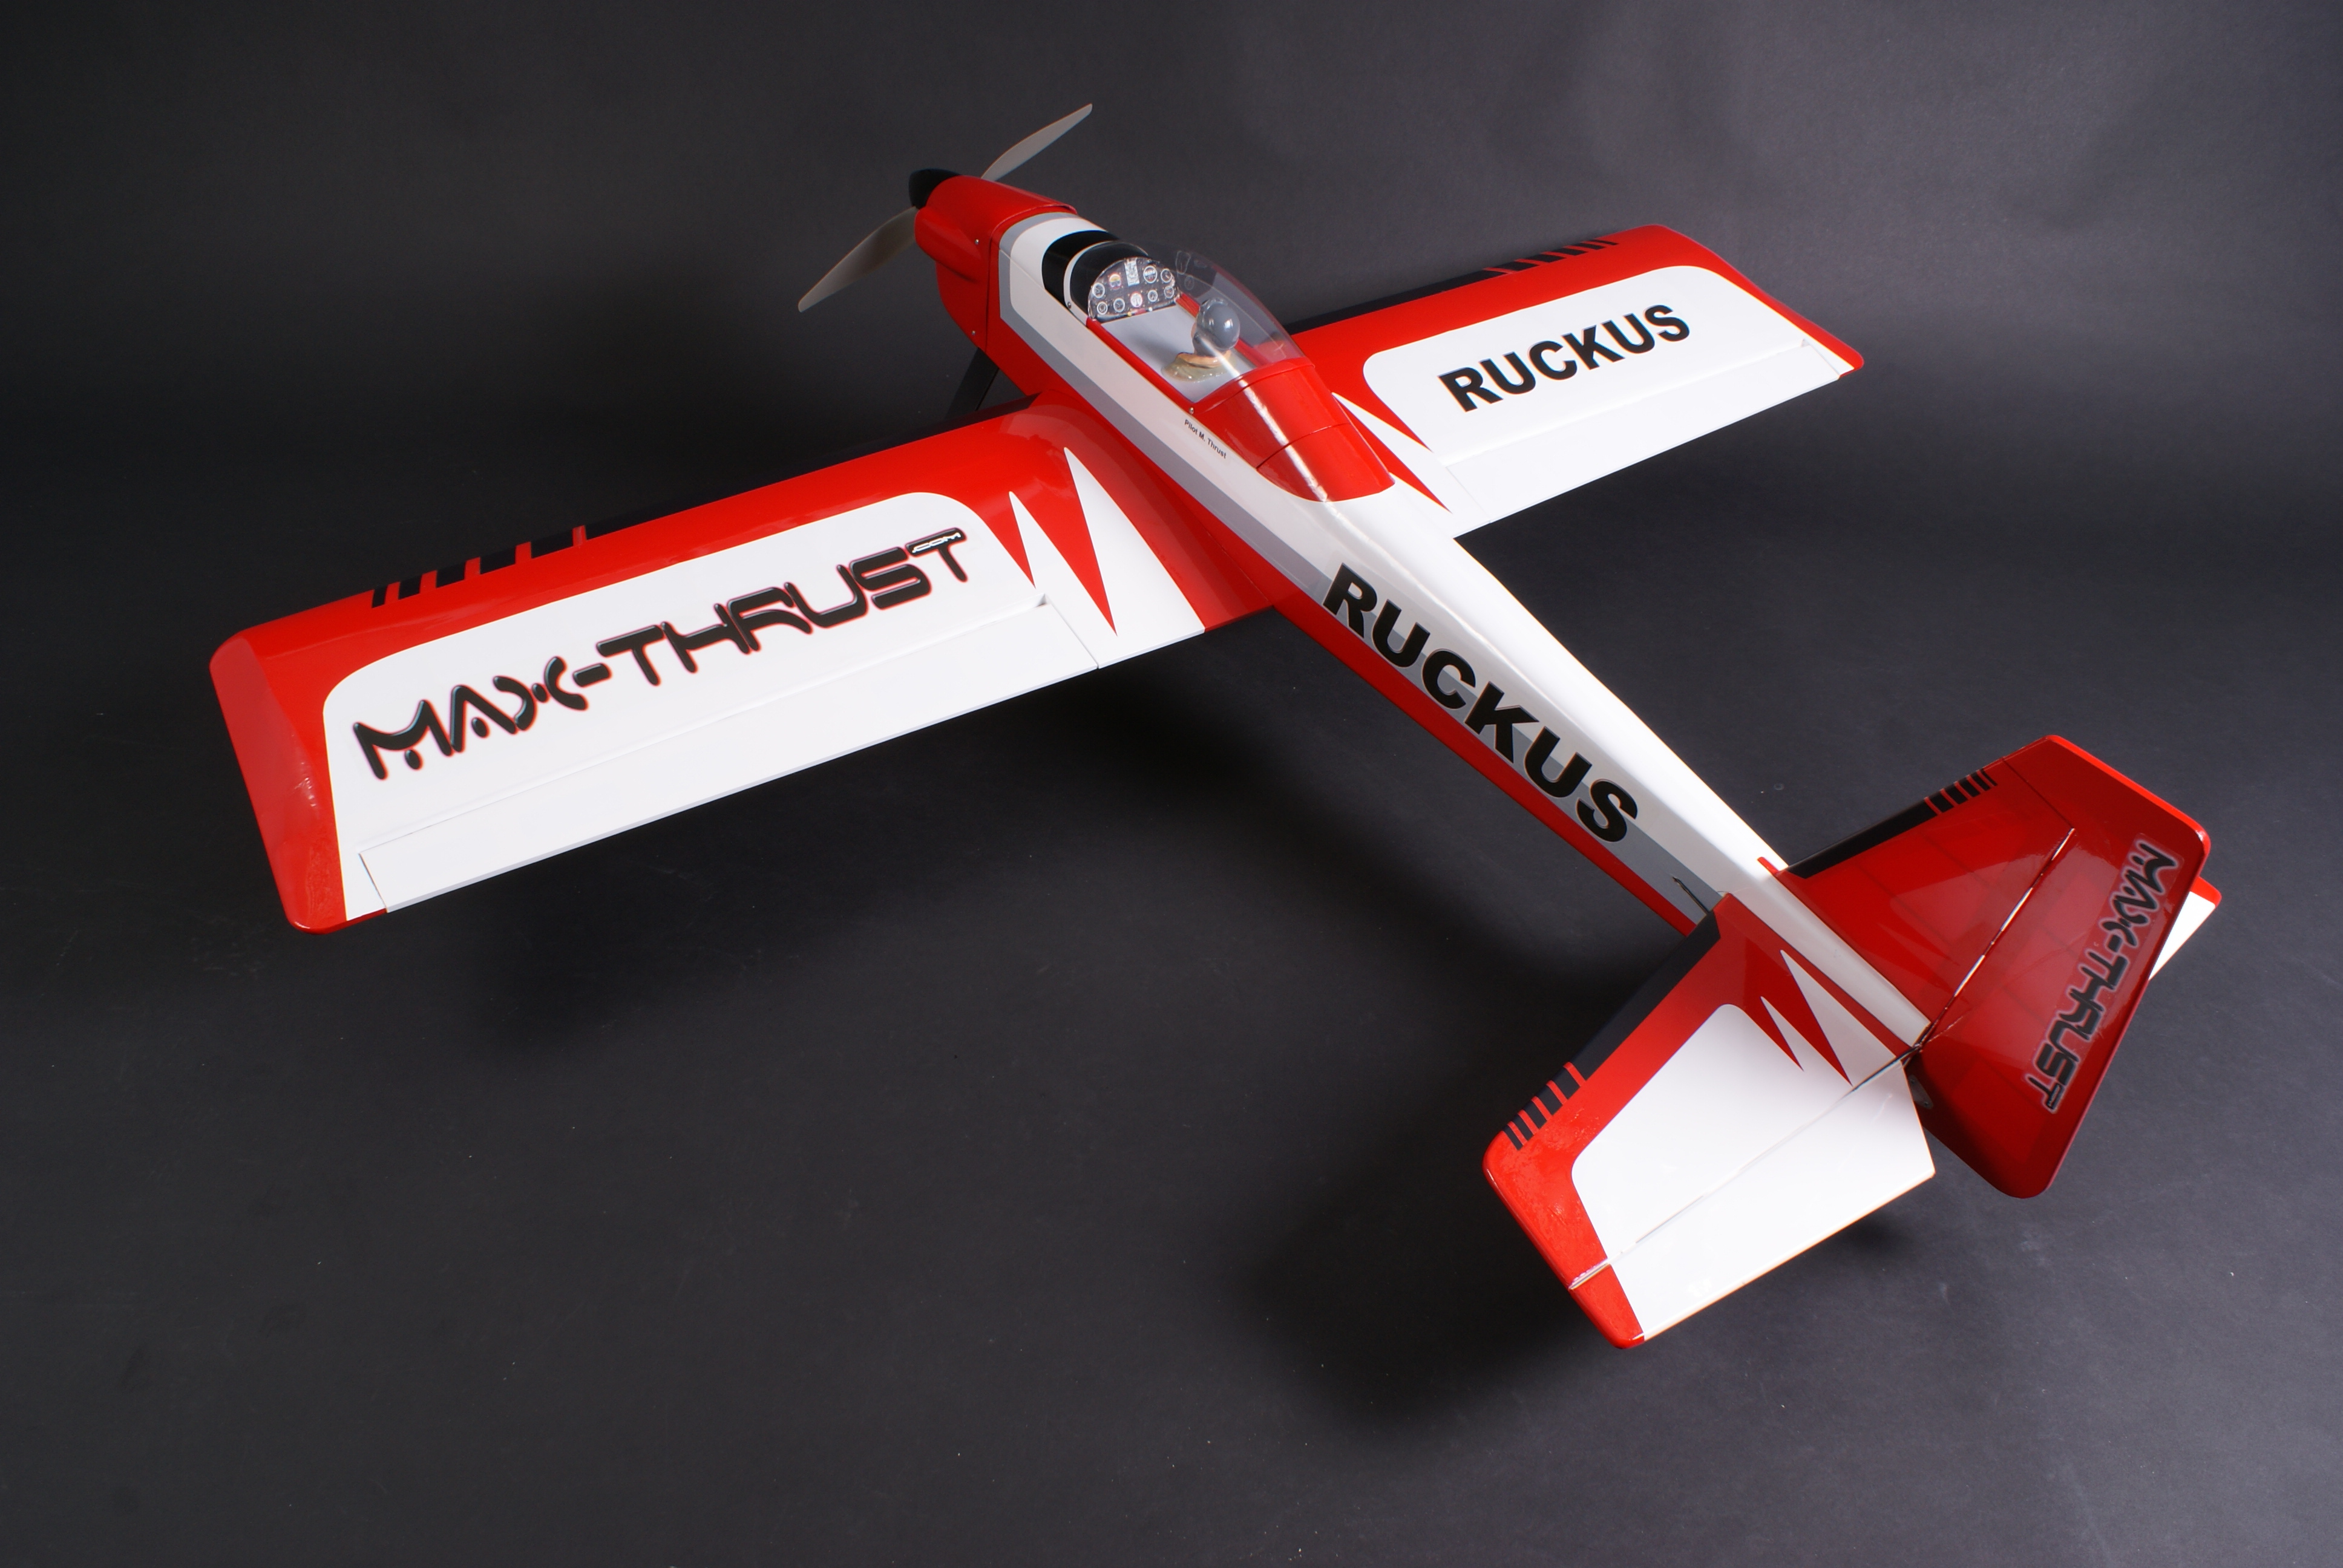 MAX THRUST PRO-BUILT BALSA RUCKUS KIT RED - IC OR ELECTRIC